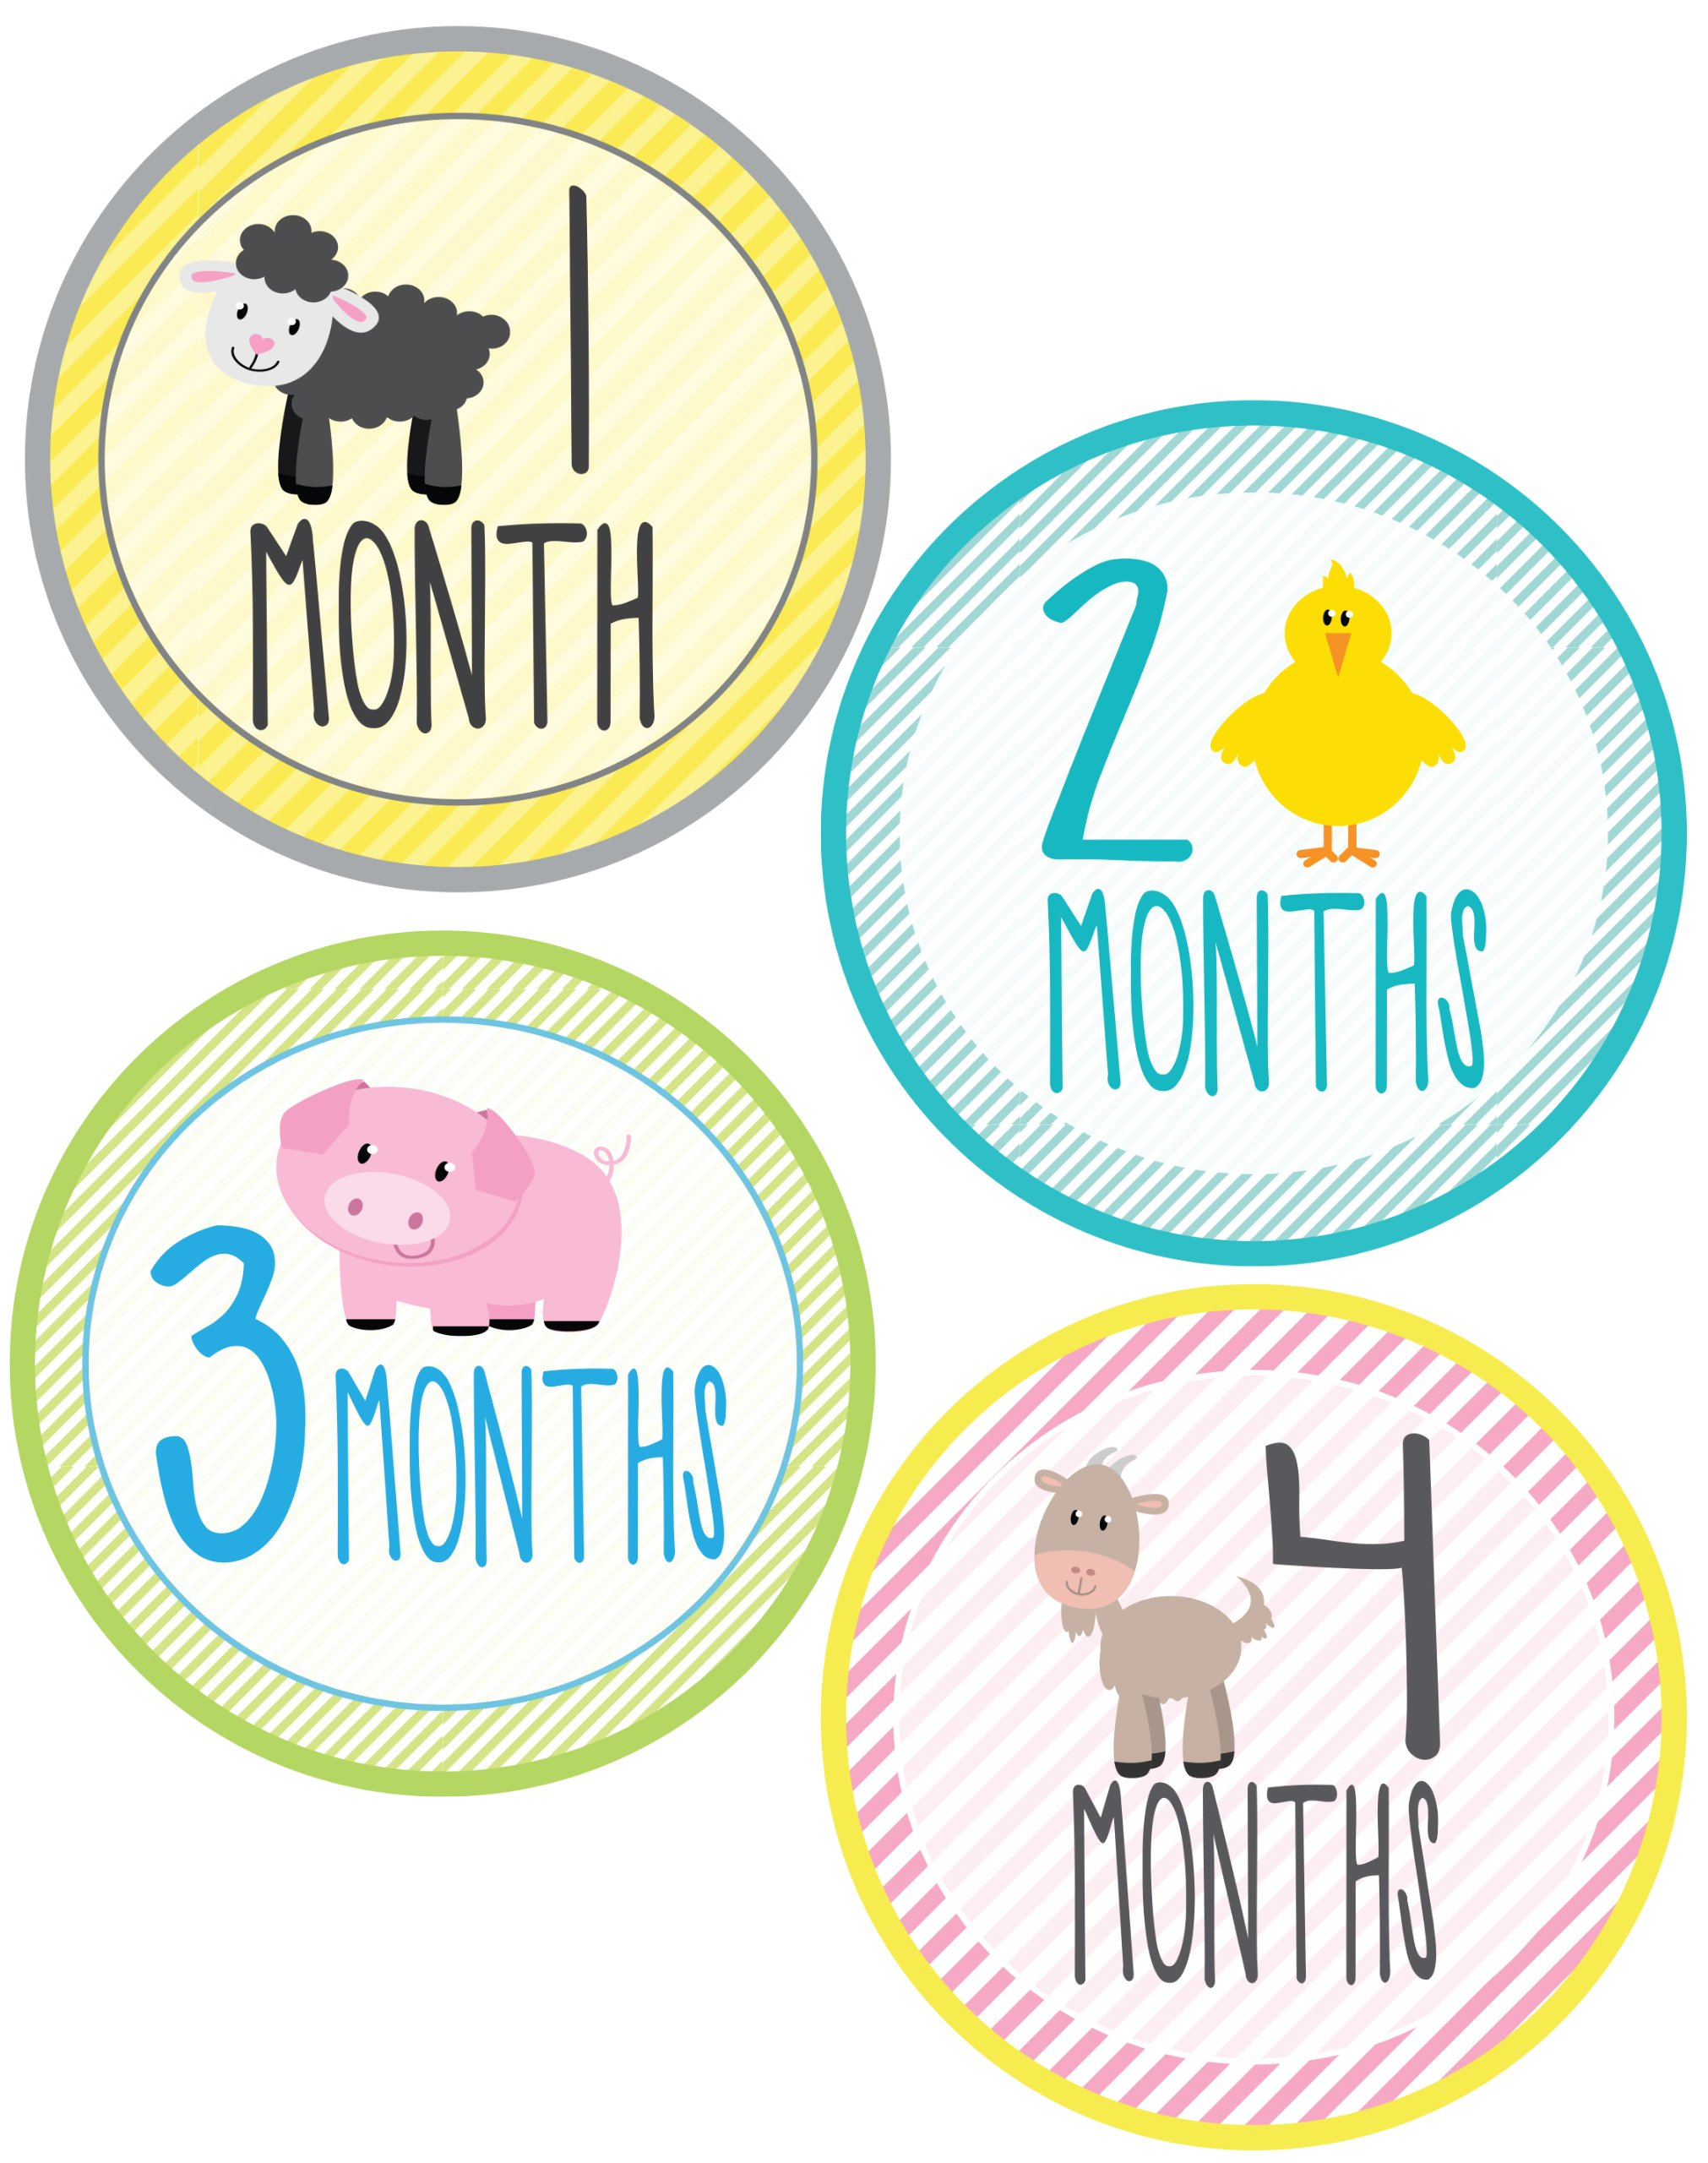 Farm Animal Monthly Onesie - Waterproof and Durable - Includes 1-12 Month Stickers